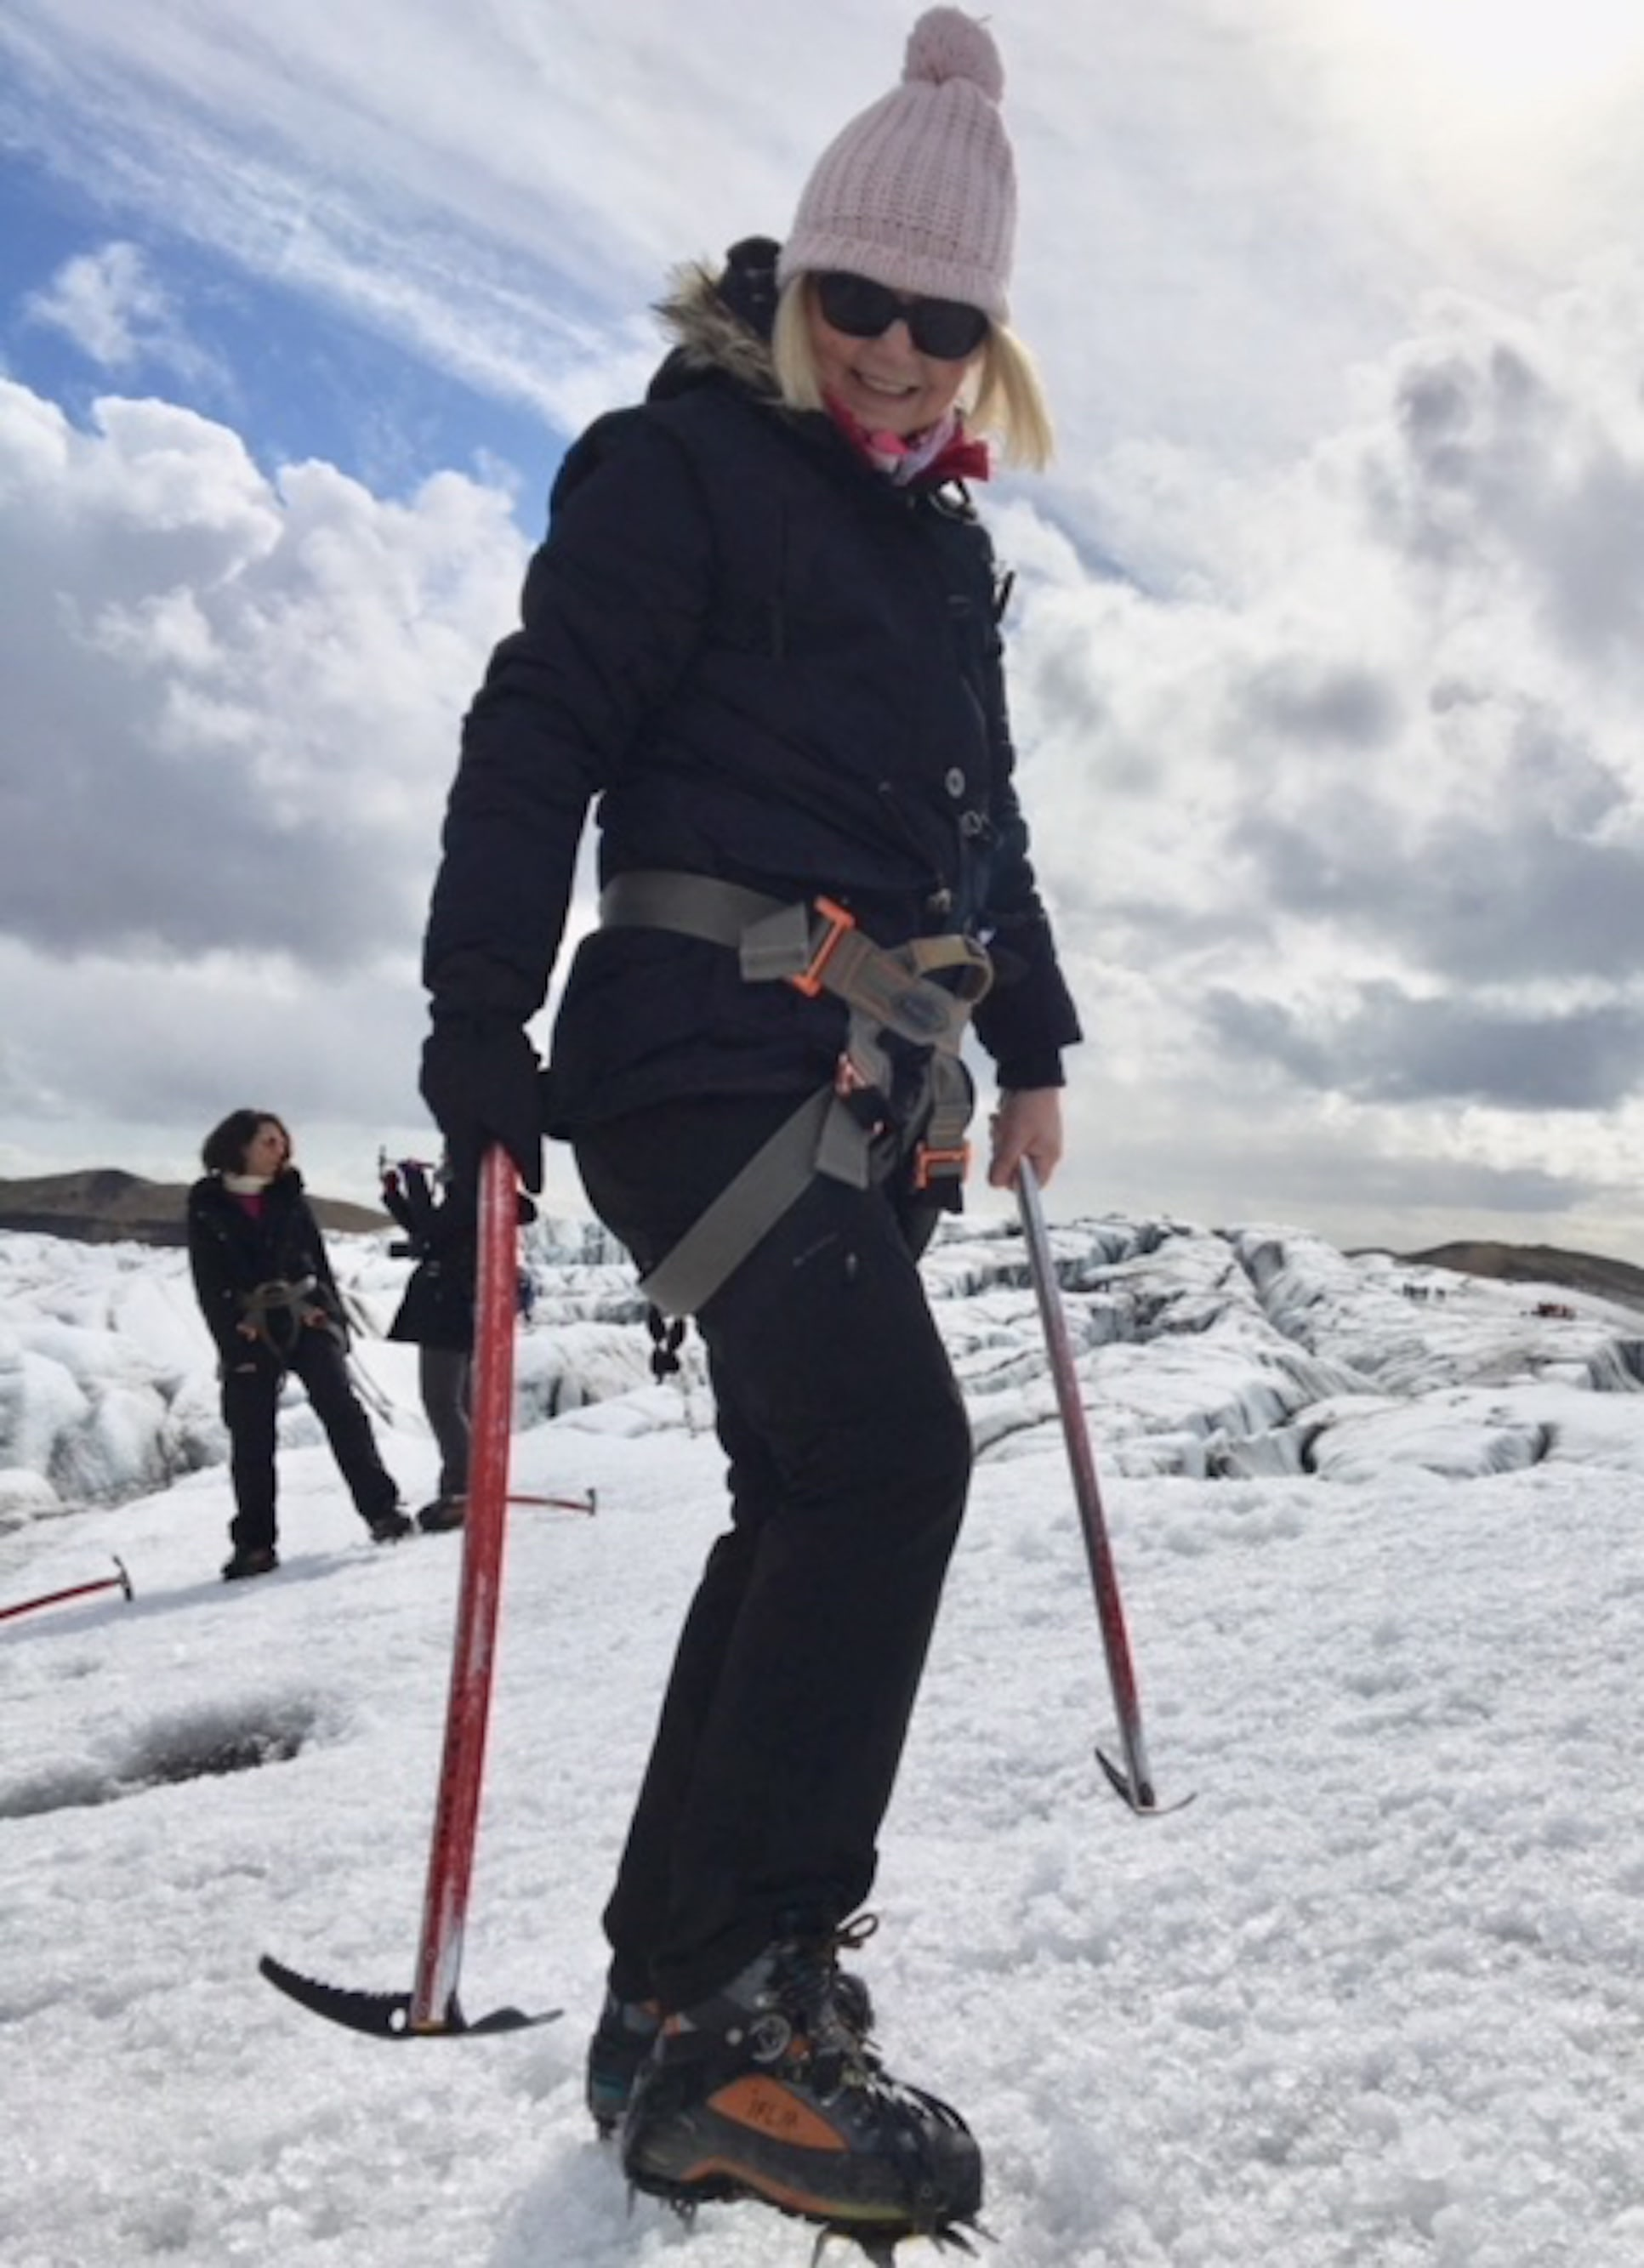 Find out how 55 year old Catherine enjoys fabulous holidays after cancer: Catherine Byrne glacier walking